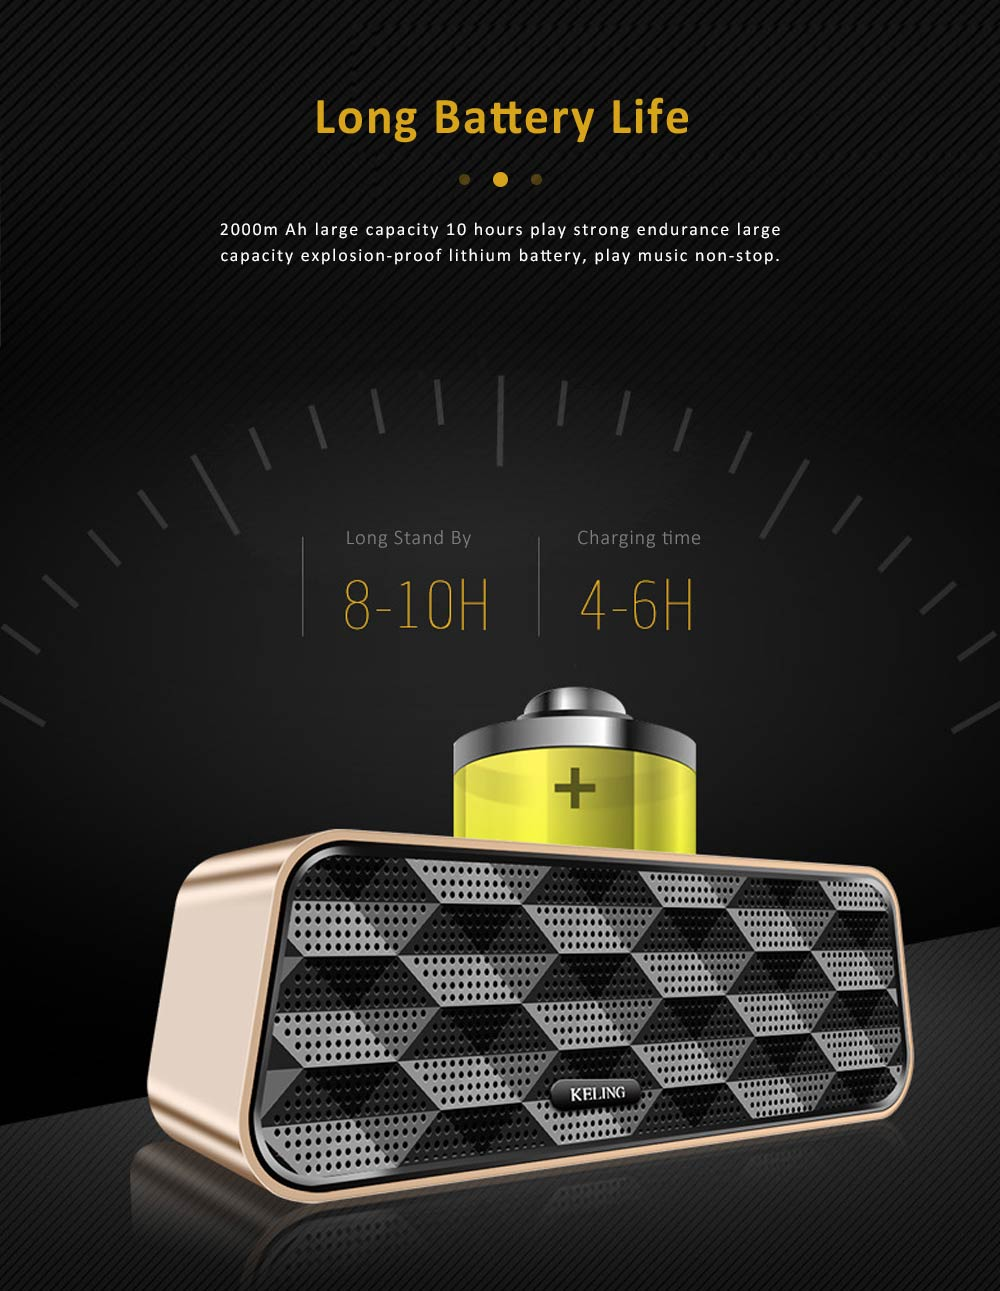 Wireless Bluetooth 5.0 Speaker with Dual Speakers, Bass Card Speaker Support Ultra-long Battery Life for Apps, Computer, Tablets, Phones 14